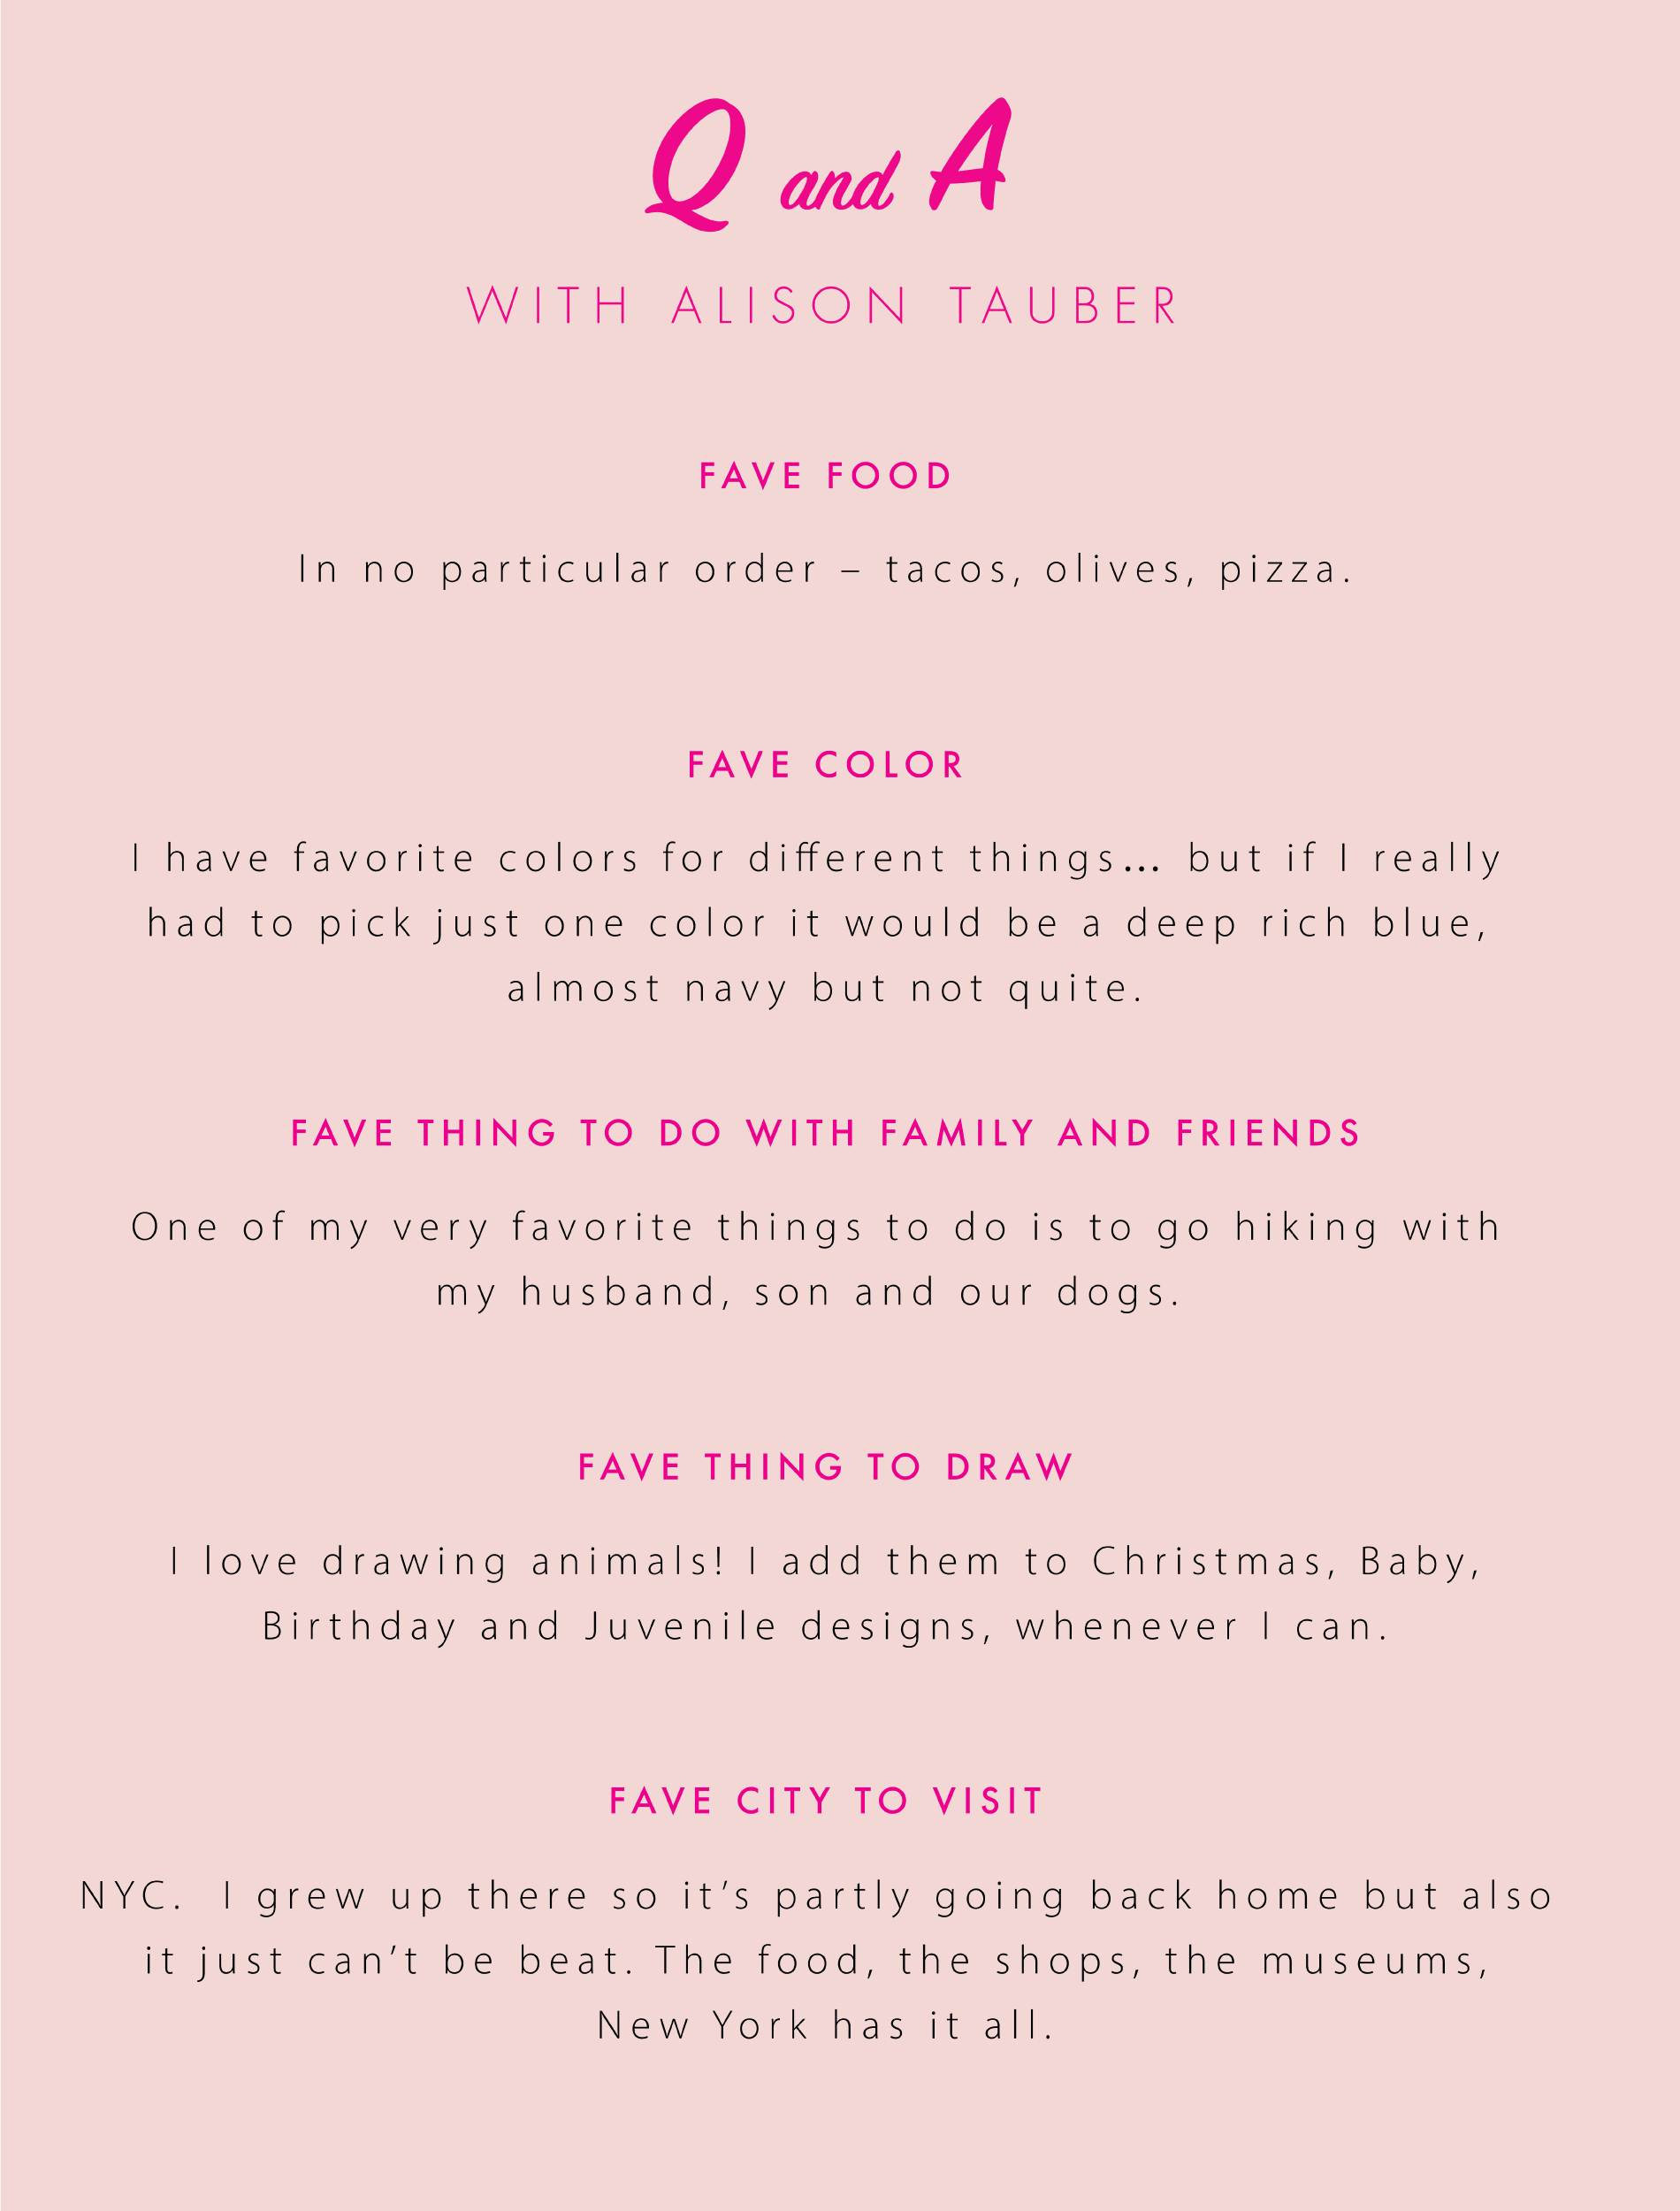 Q-and-A-Alison-Tauber.png